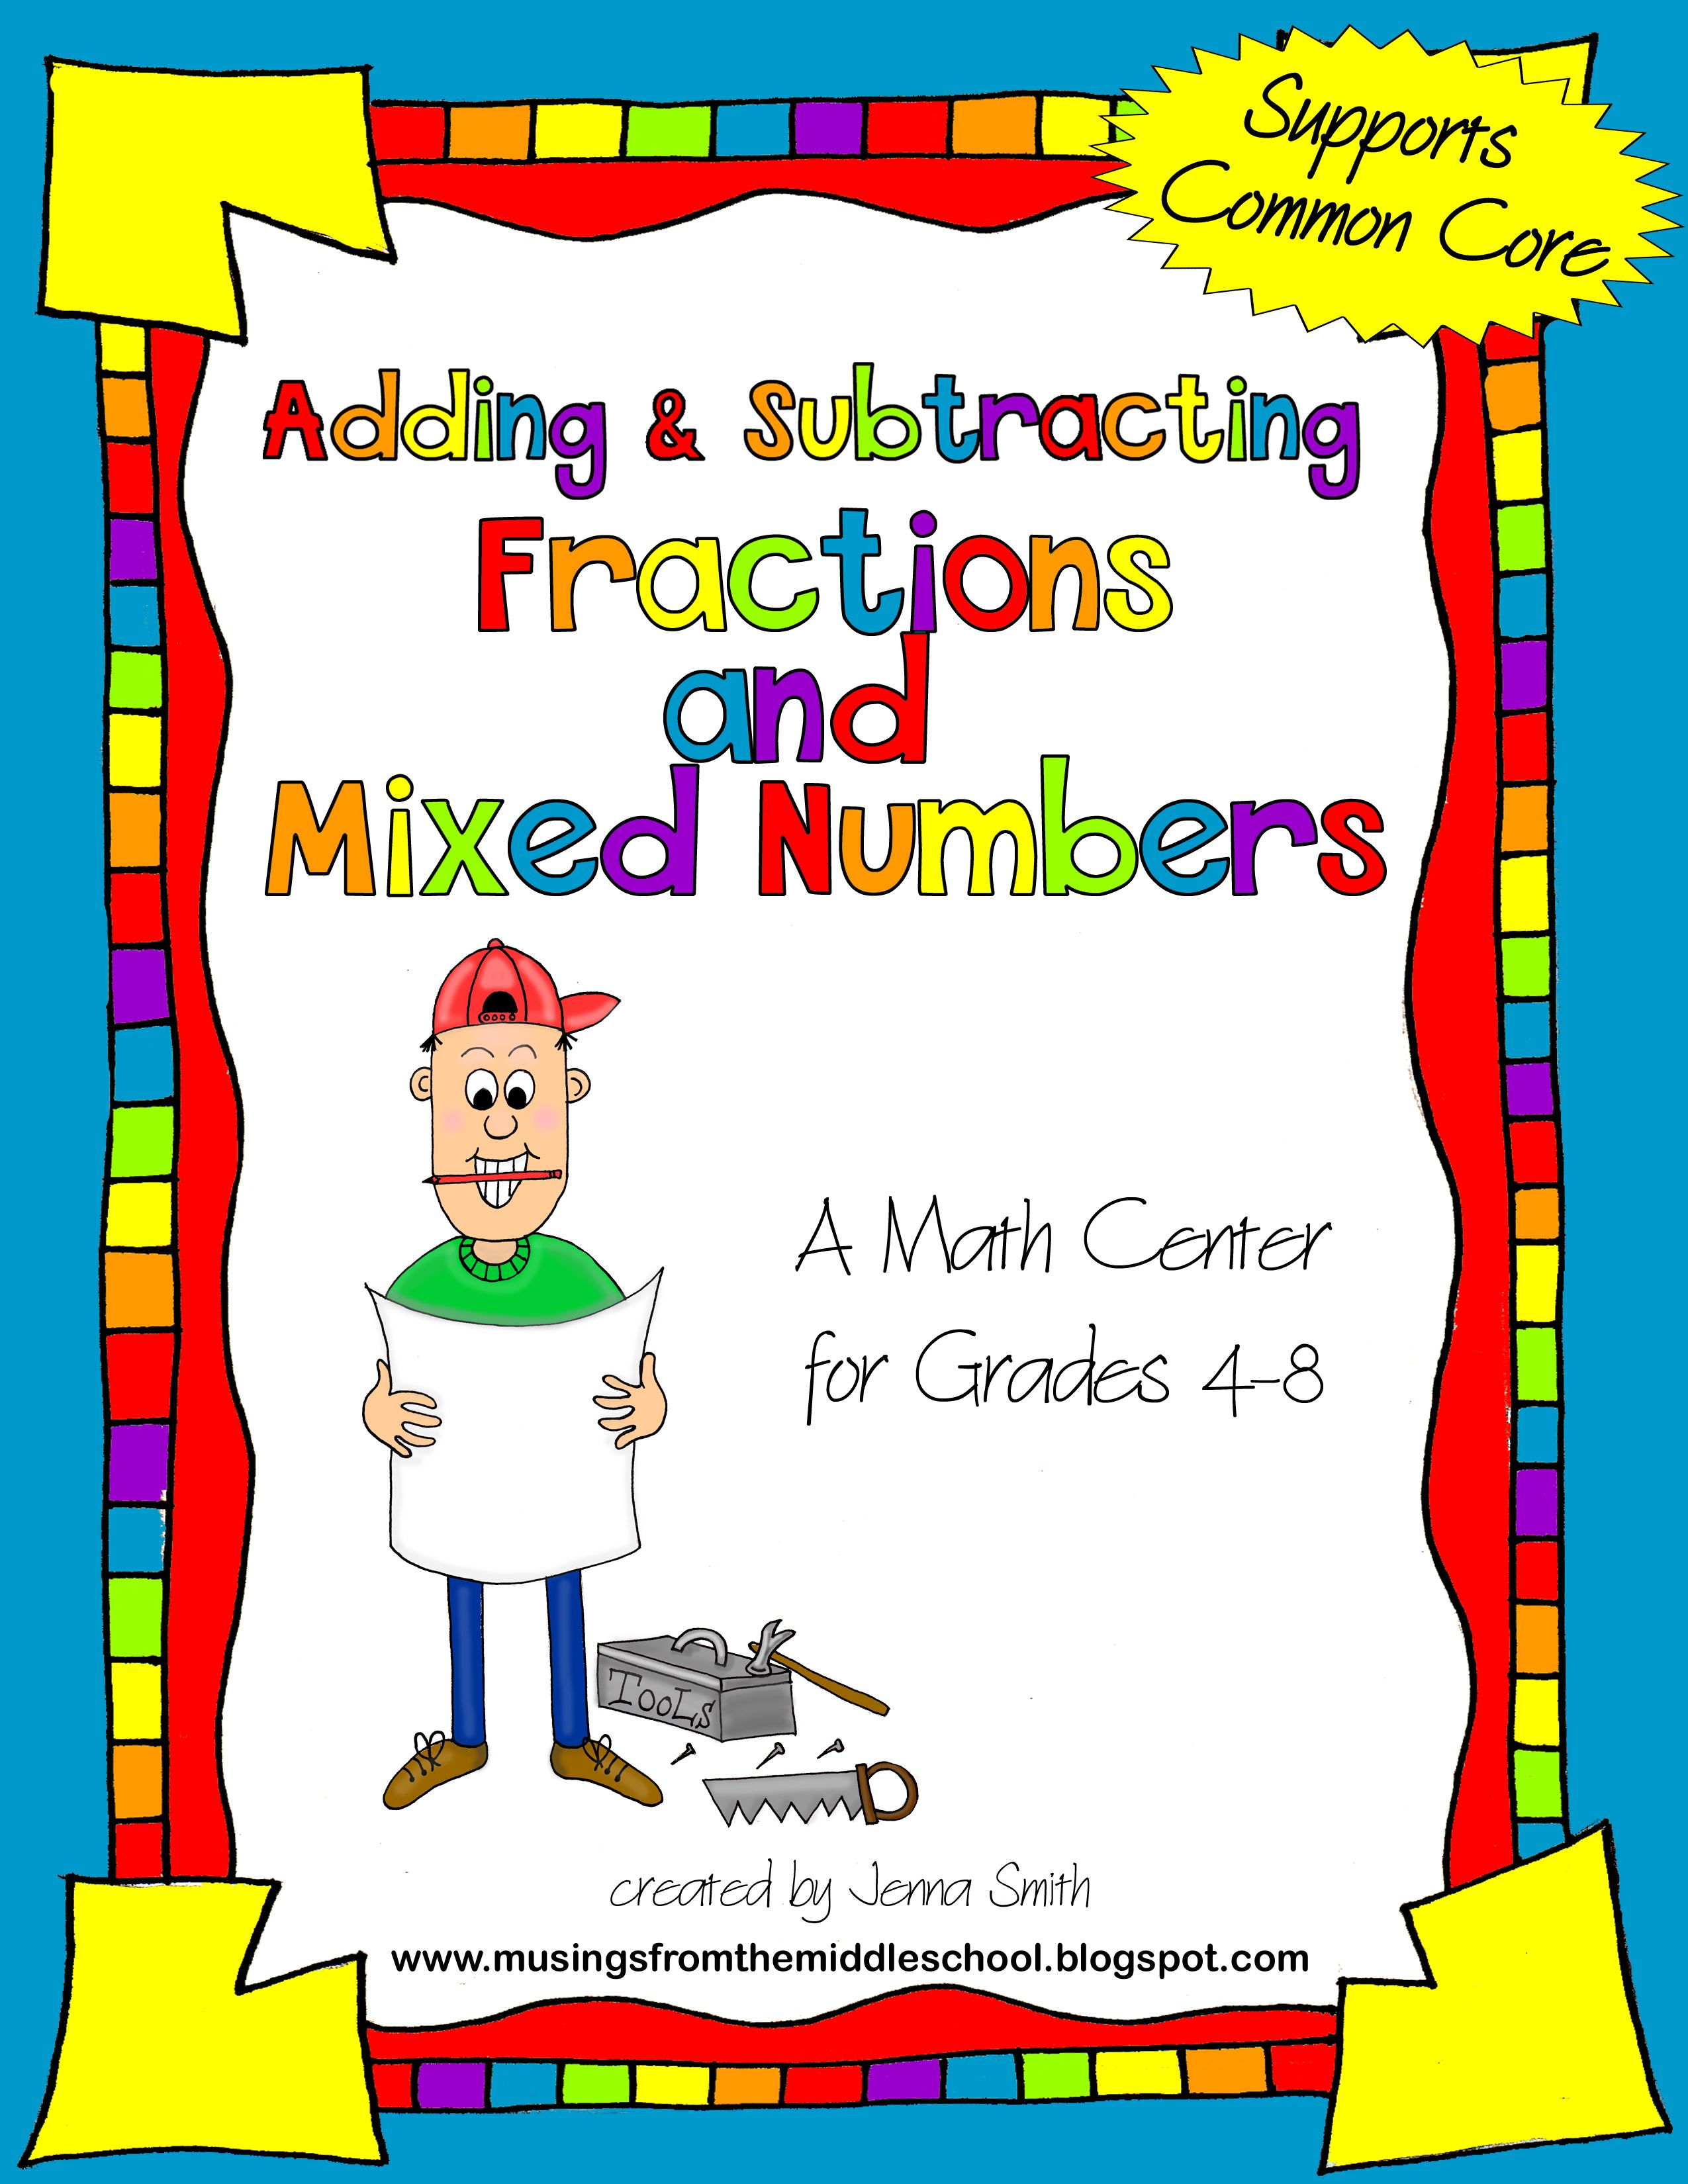 Adding and subtracting fractions mixed numbersa math